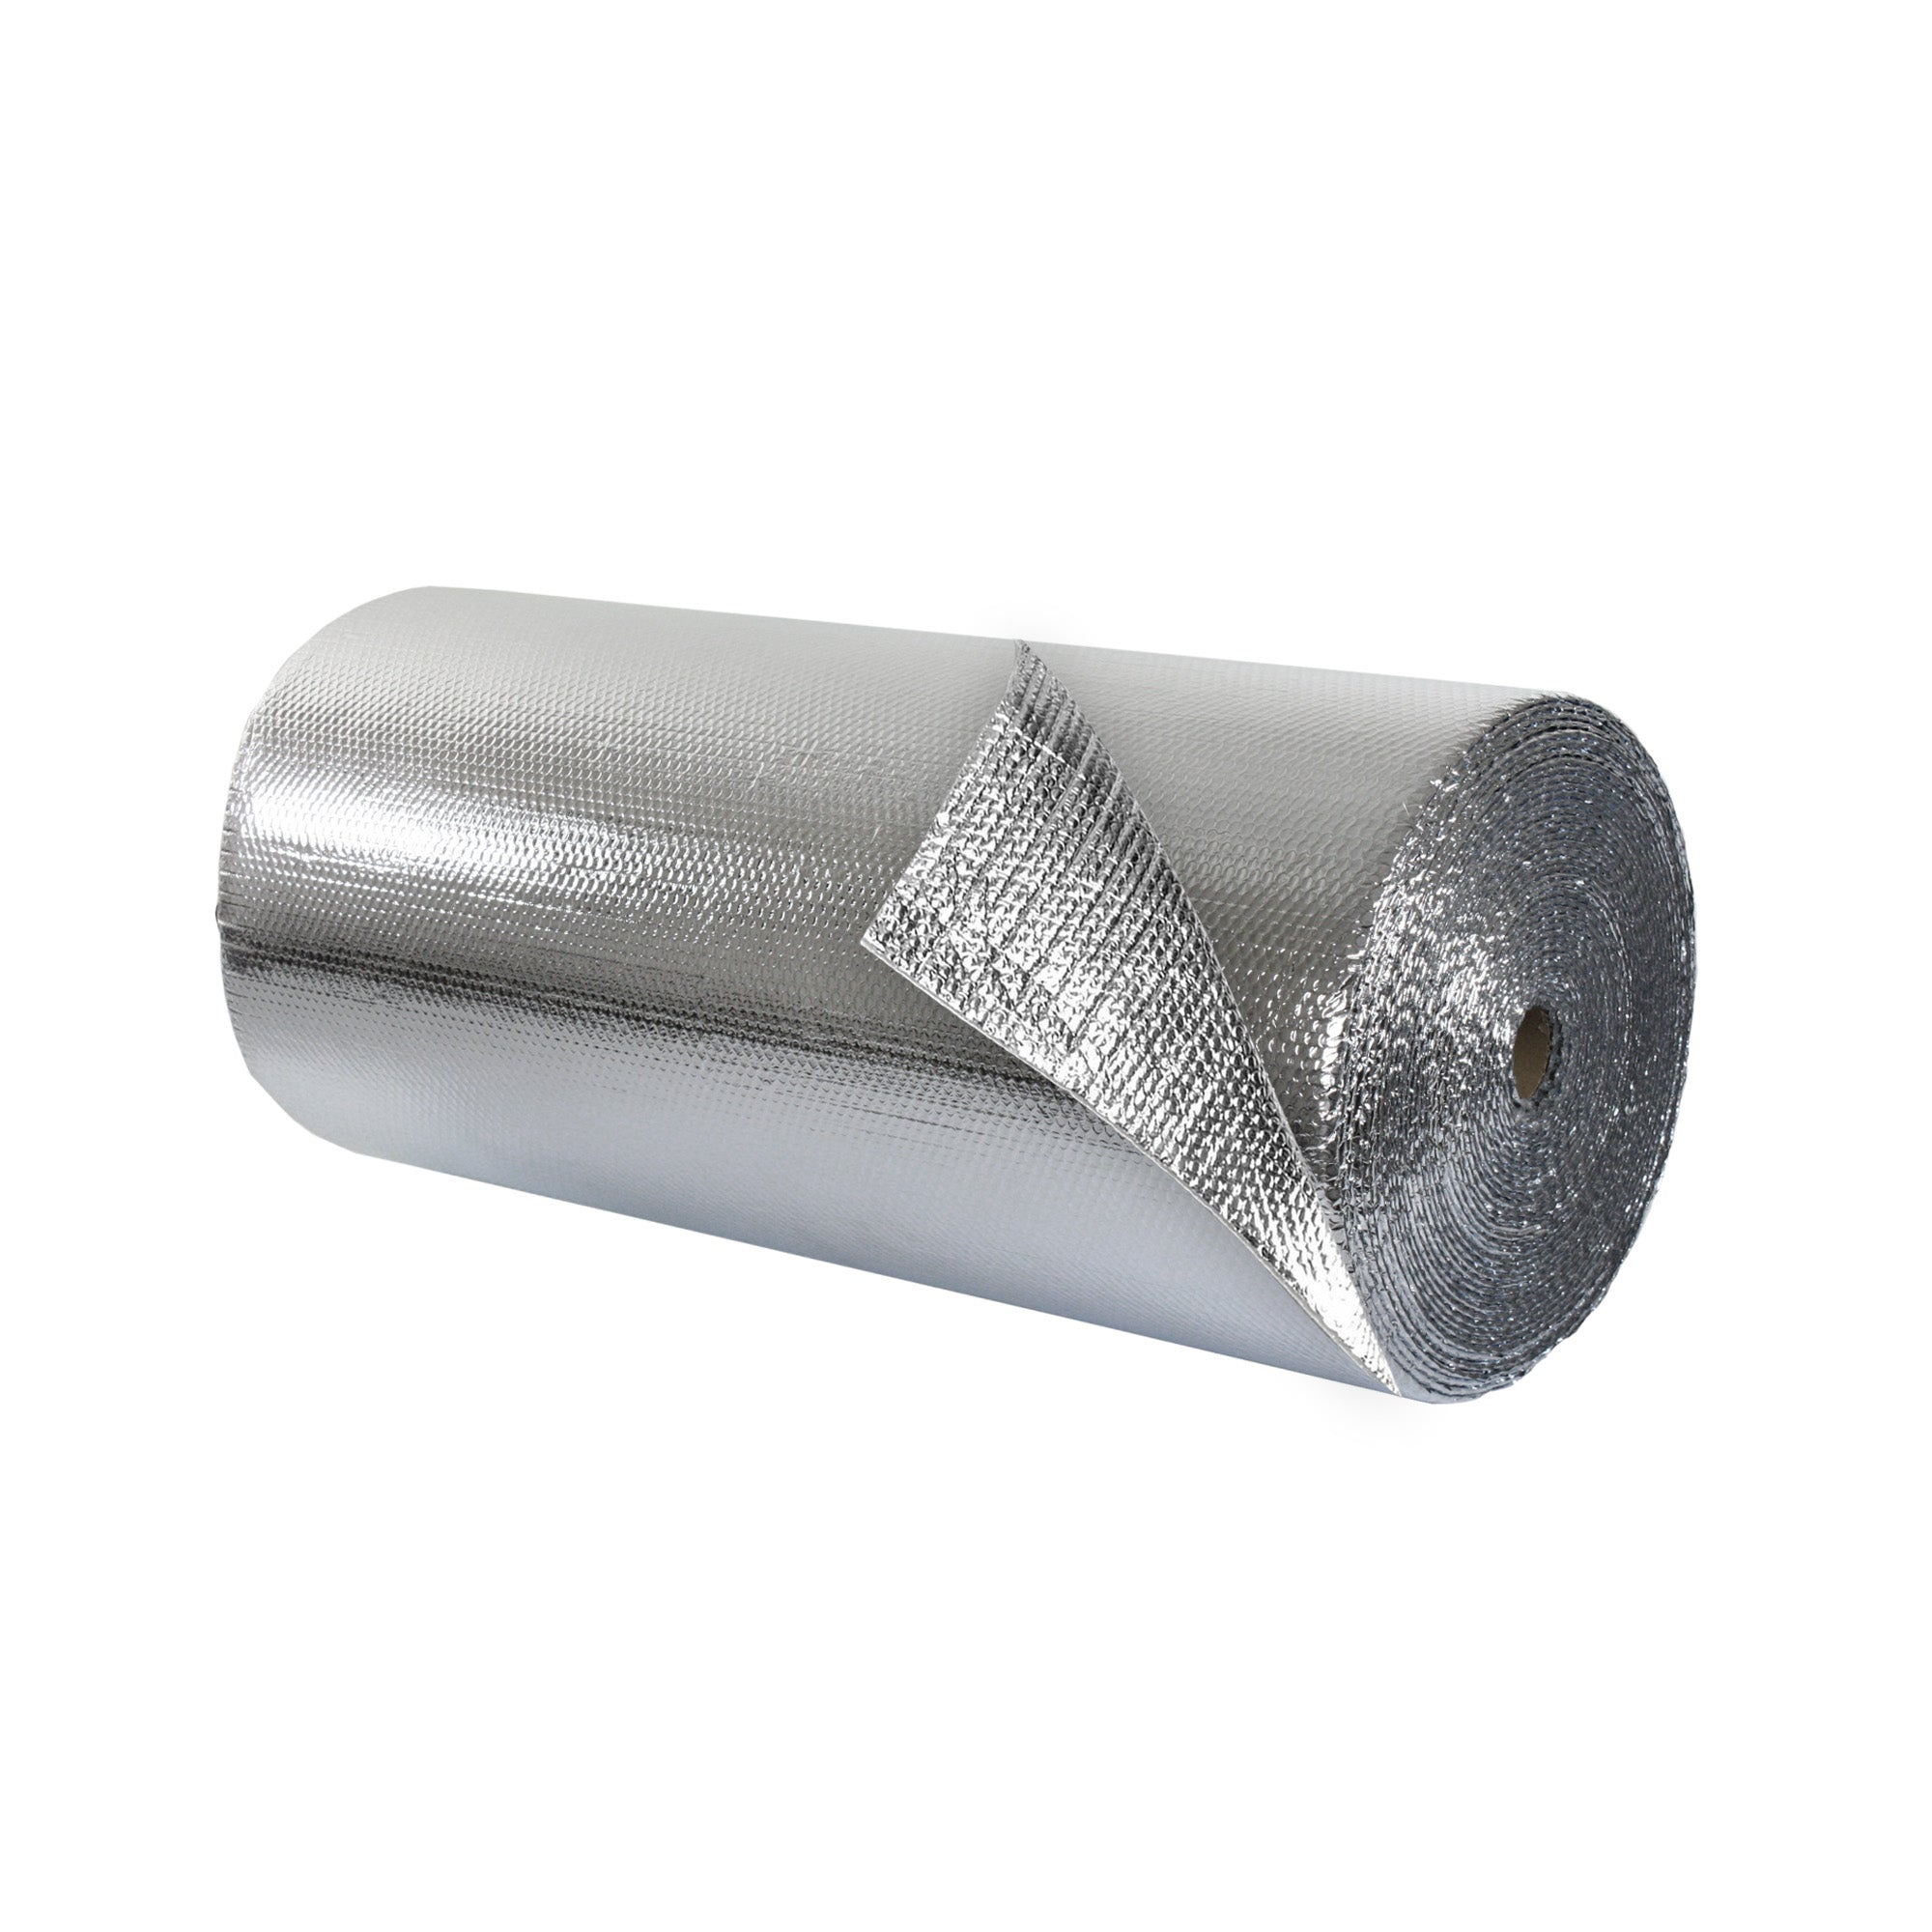 Double Bubble Insulation Foil_Foil 4 foot x 125 foot 500 sq ft